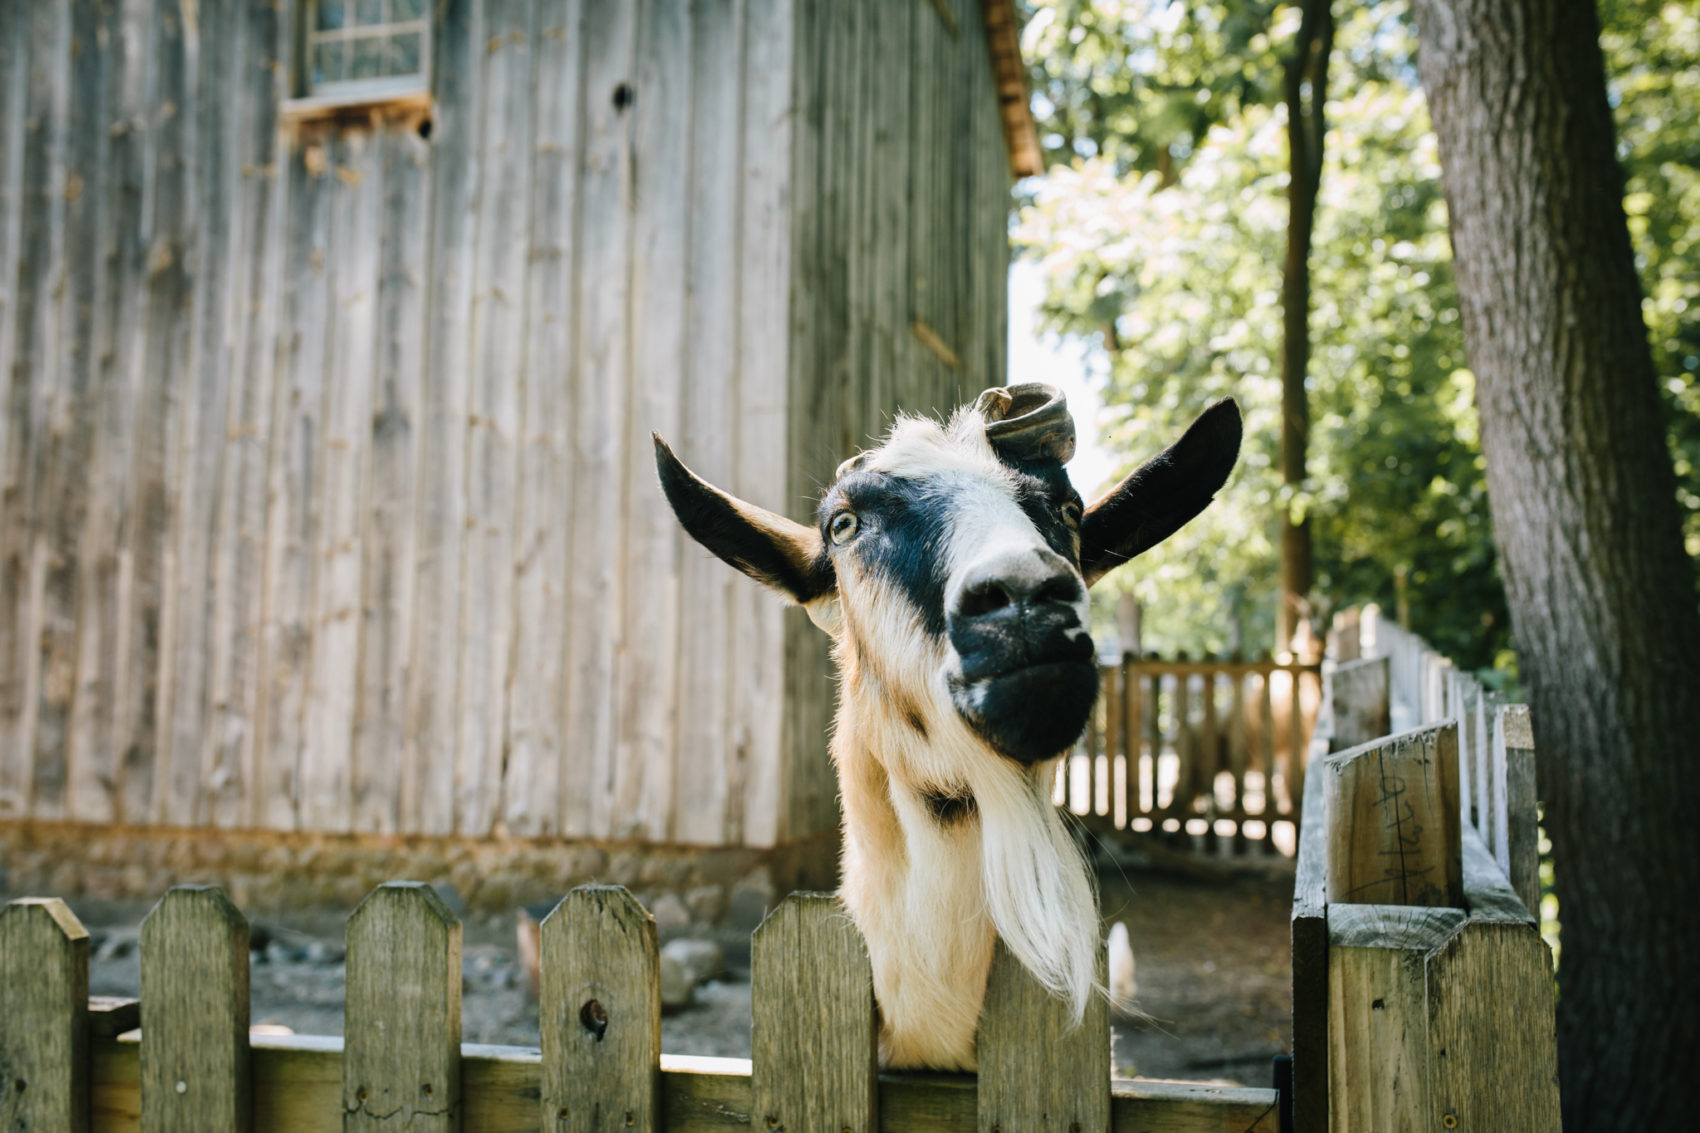 Wedding goat at Cobblestone Farm in Ann Arbor, Michigan